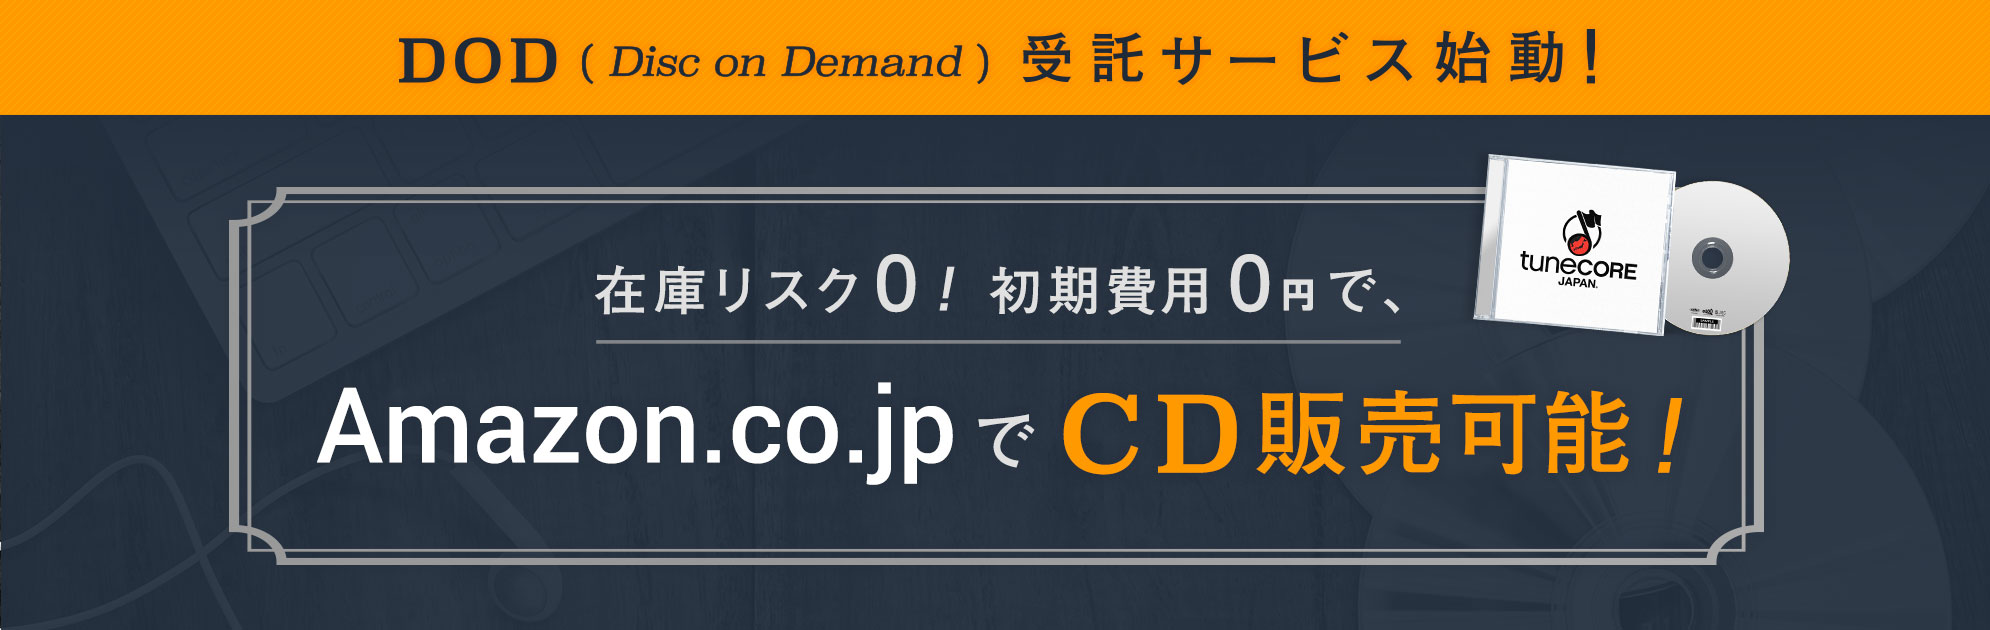 DOD (Disc on Demand) 受託サービス